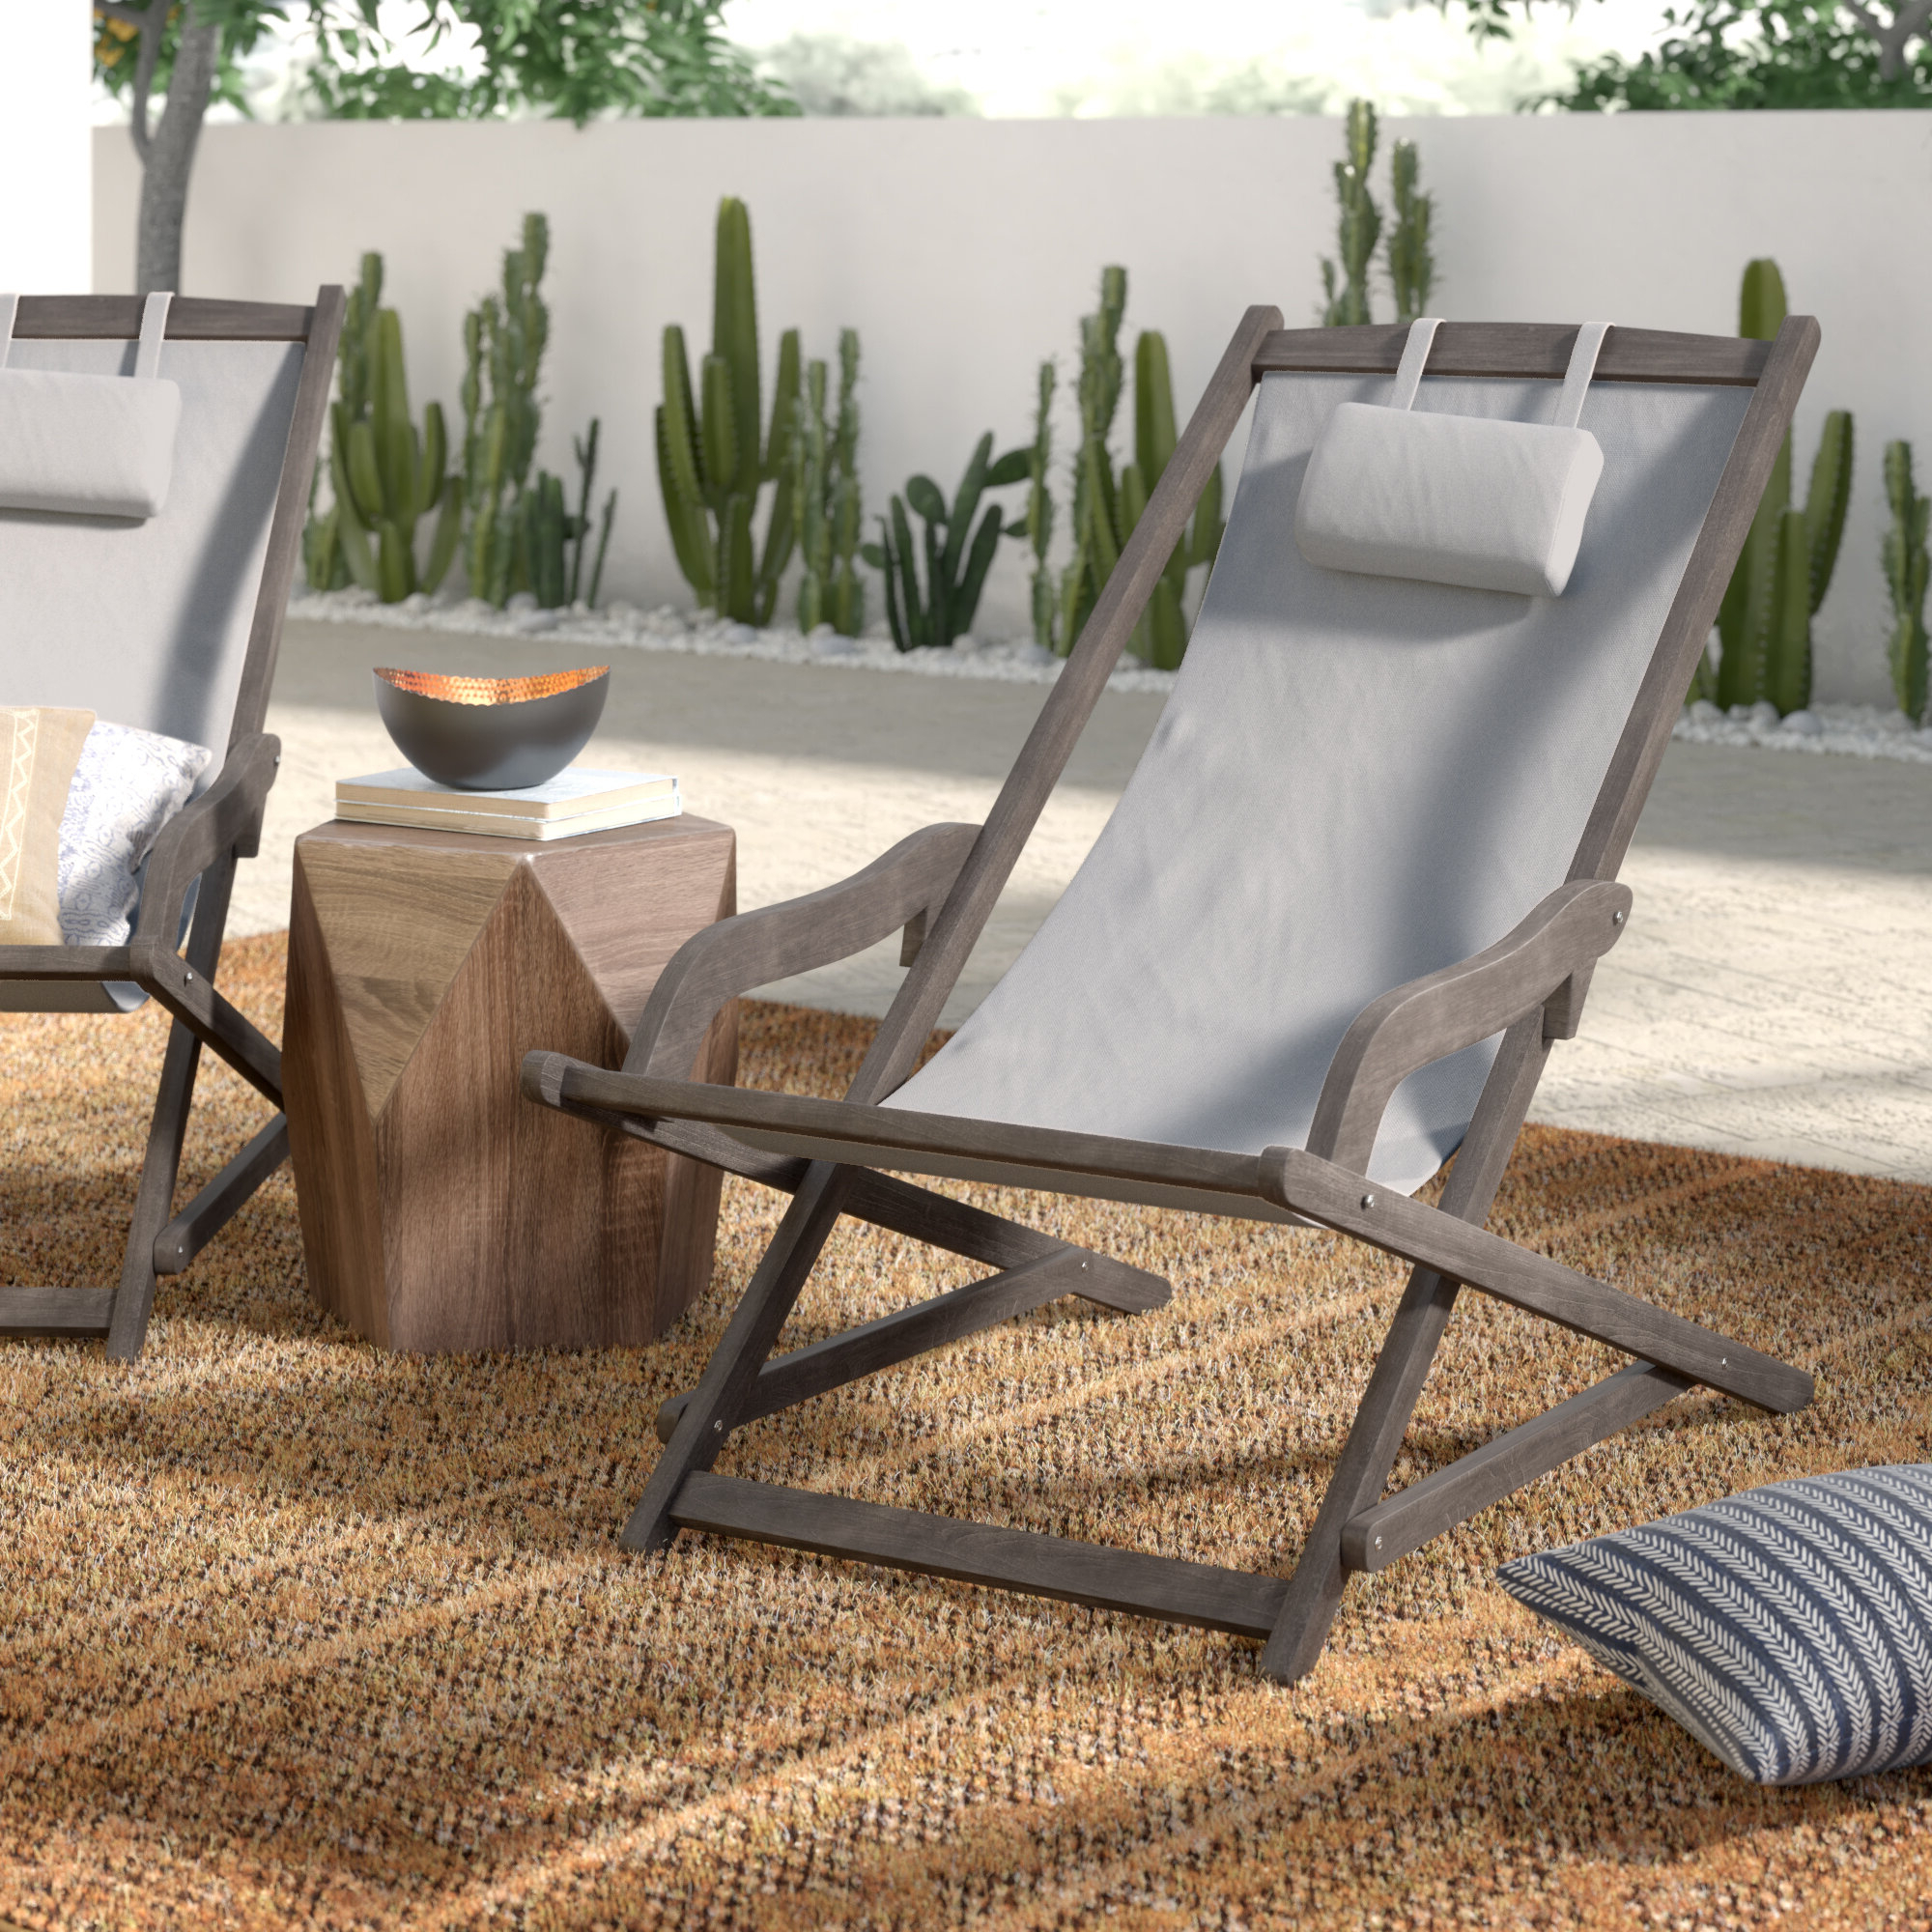 2020 Outdoor Wood Sling Chairs In Tardiff Outdoor Wood And Canvas Sling Arm Chair (View 5 of 25)